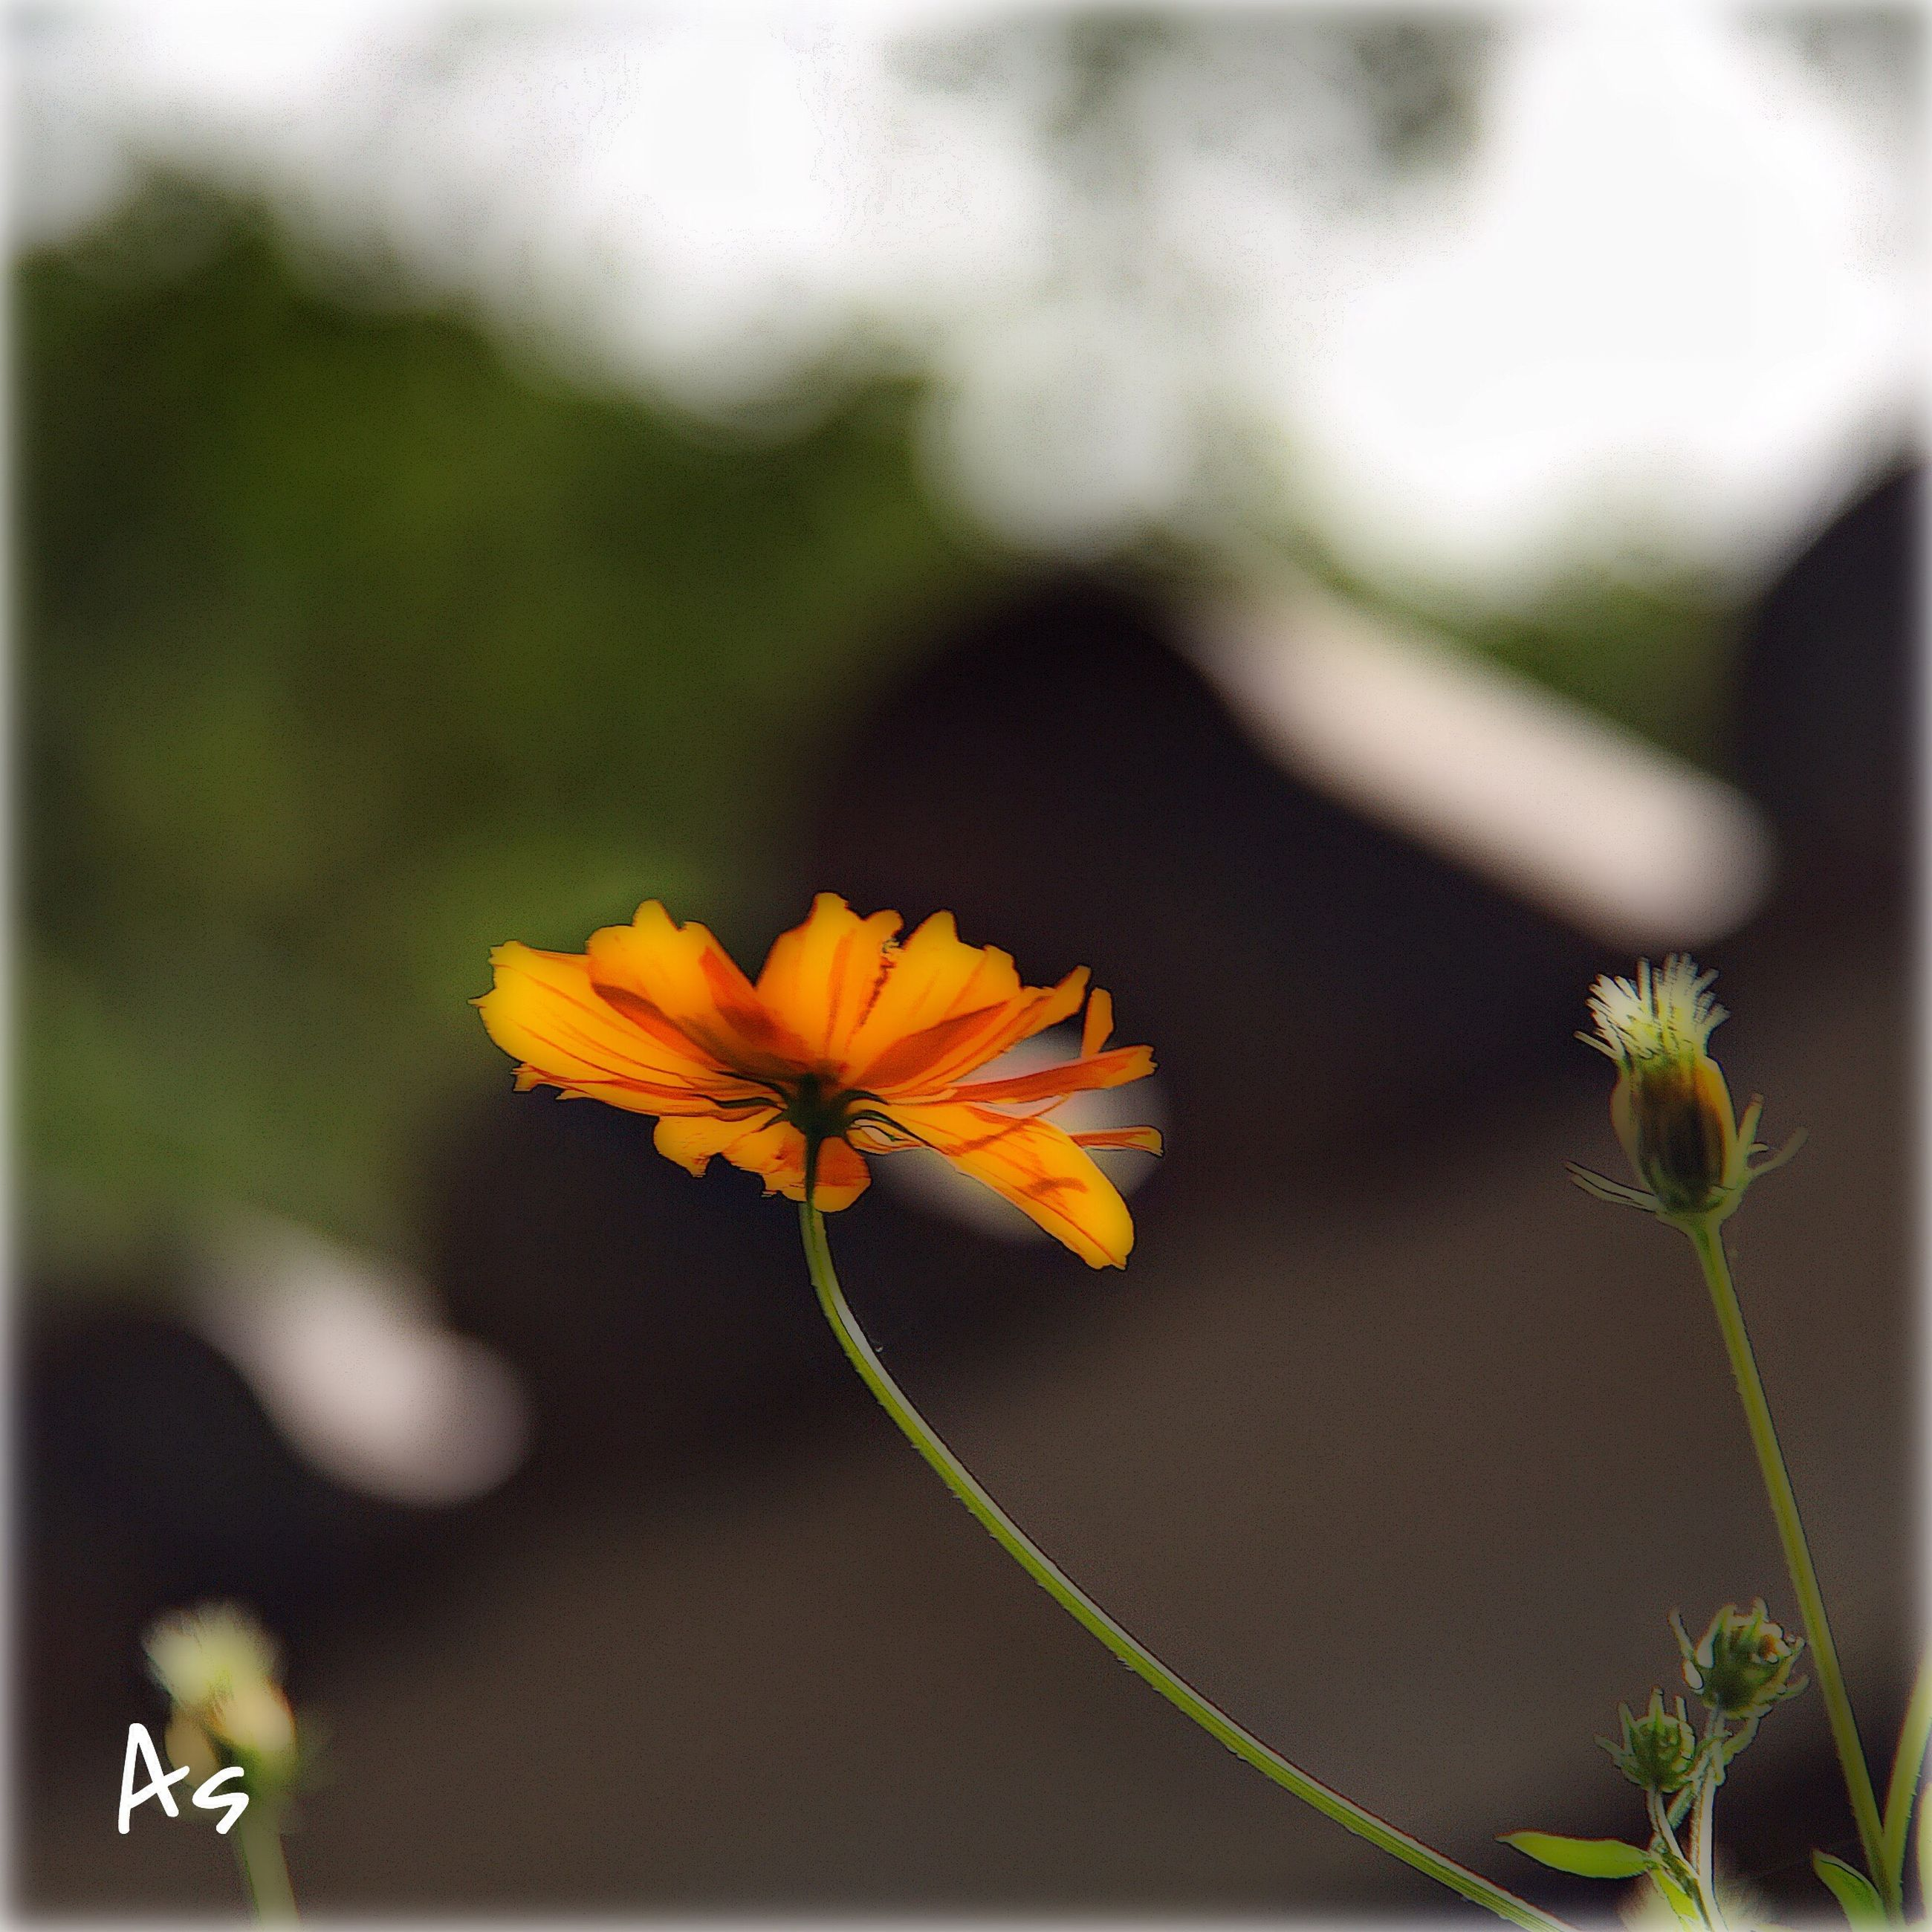 flower, petal, fragility, flower head, focus on foreground, freshness, growth, close-up, beauty in nature, stem, yellow, plant, nature, blooming, orange color, single flower, leaf, in bloom, selective focus, botany